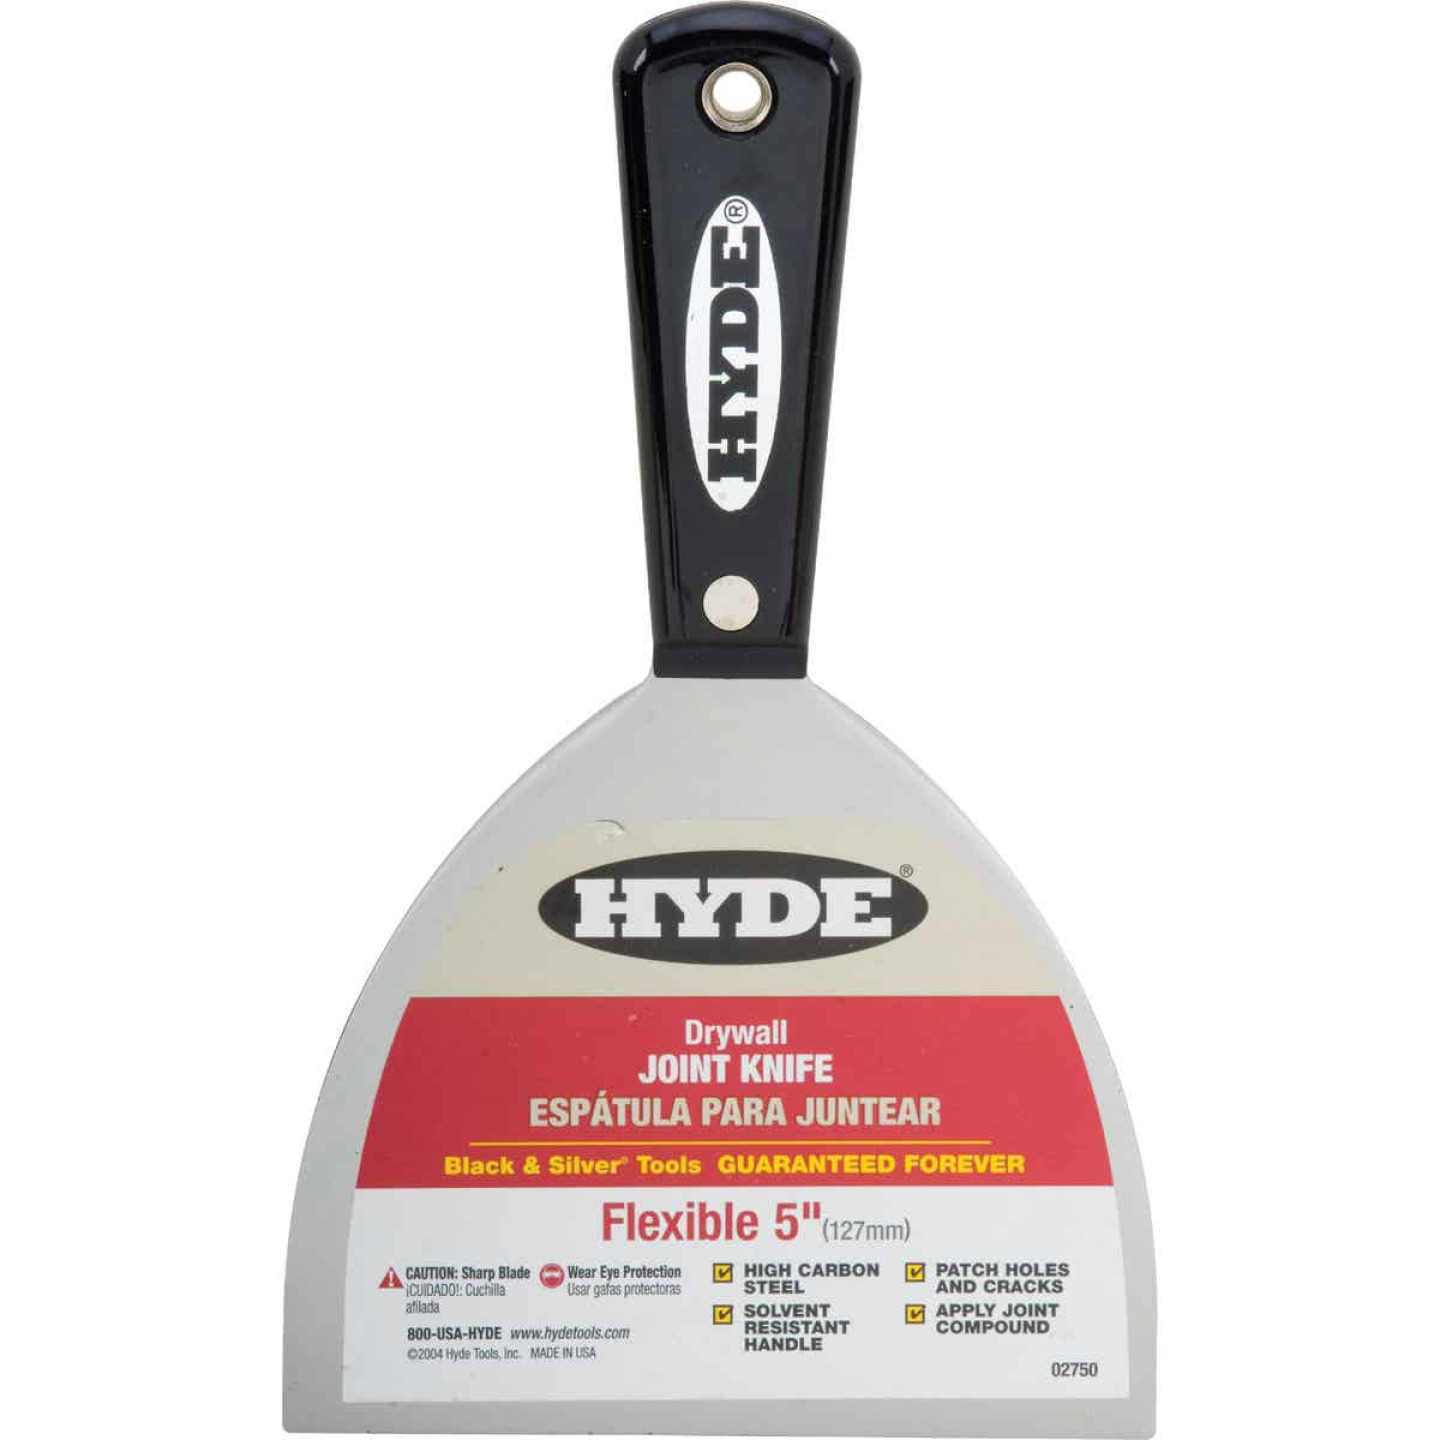 Hyde Black & Silver Professional 5 In. Flexible Joint Knife Image 1